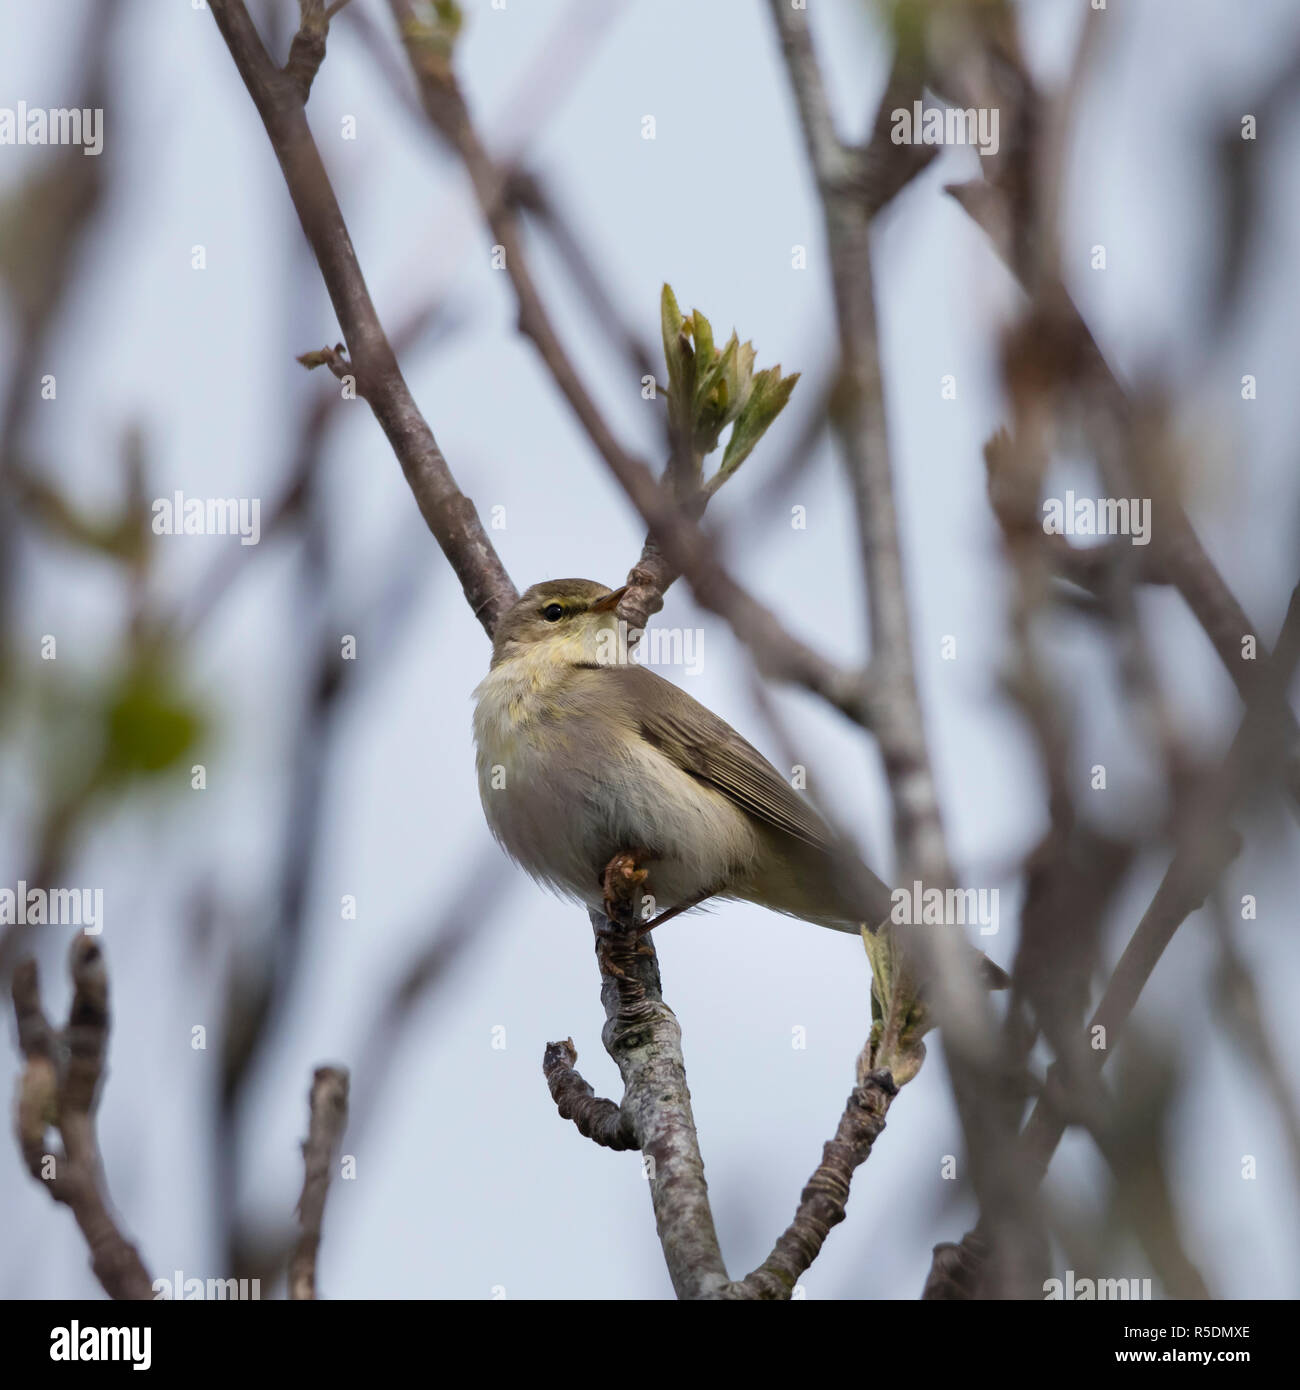 Garden warbler ( Sylvia borin) singing in a tree, a regular summer visitor to the UK. - Stock Image